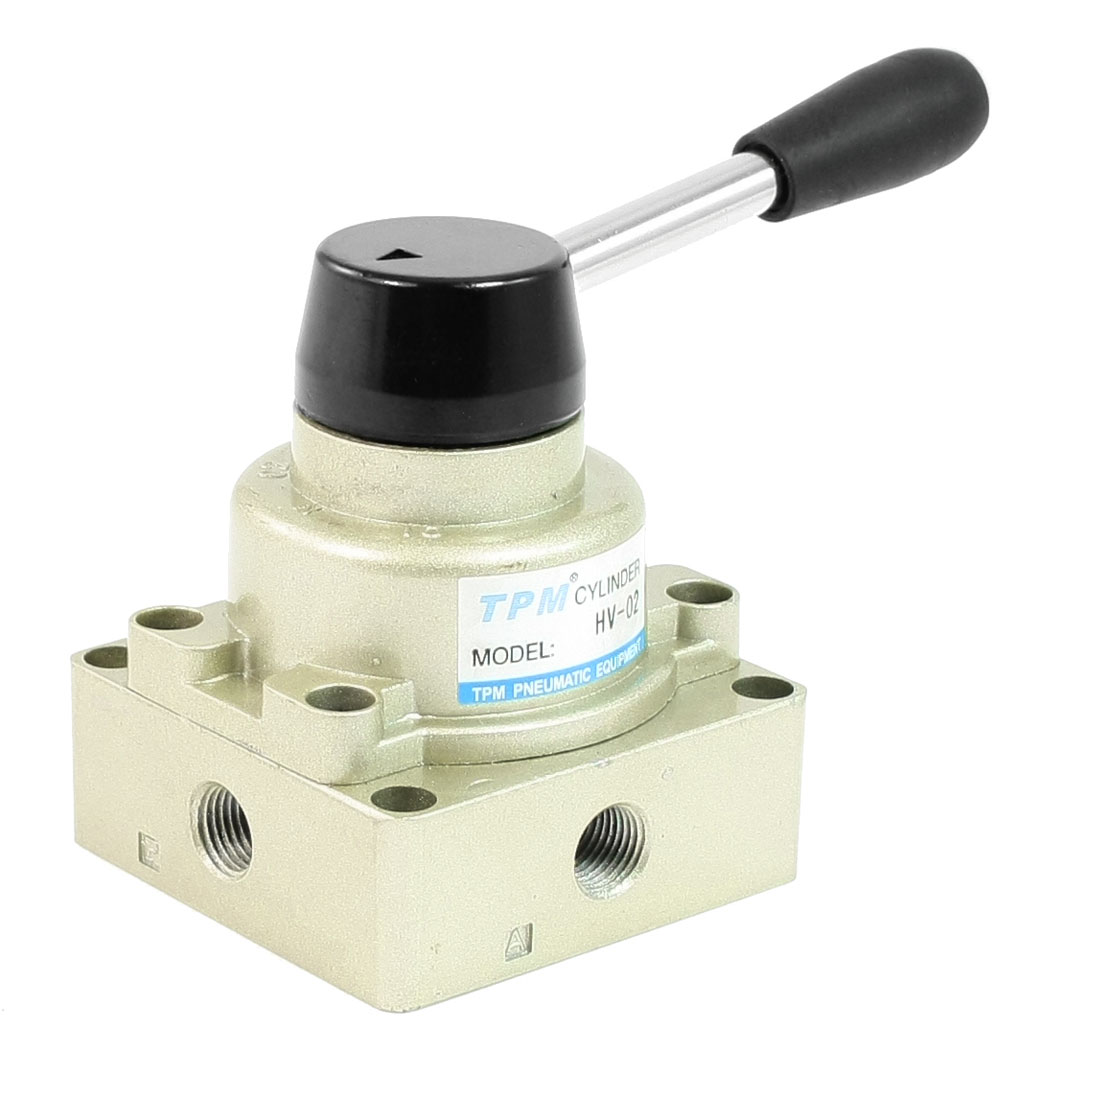 "HV-02 1/4""PT Direct Action 3 Position 2 Way Pneumatic Hand Lever Turn Valve"